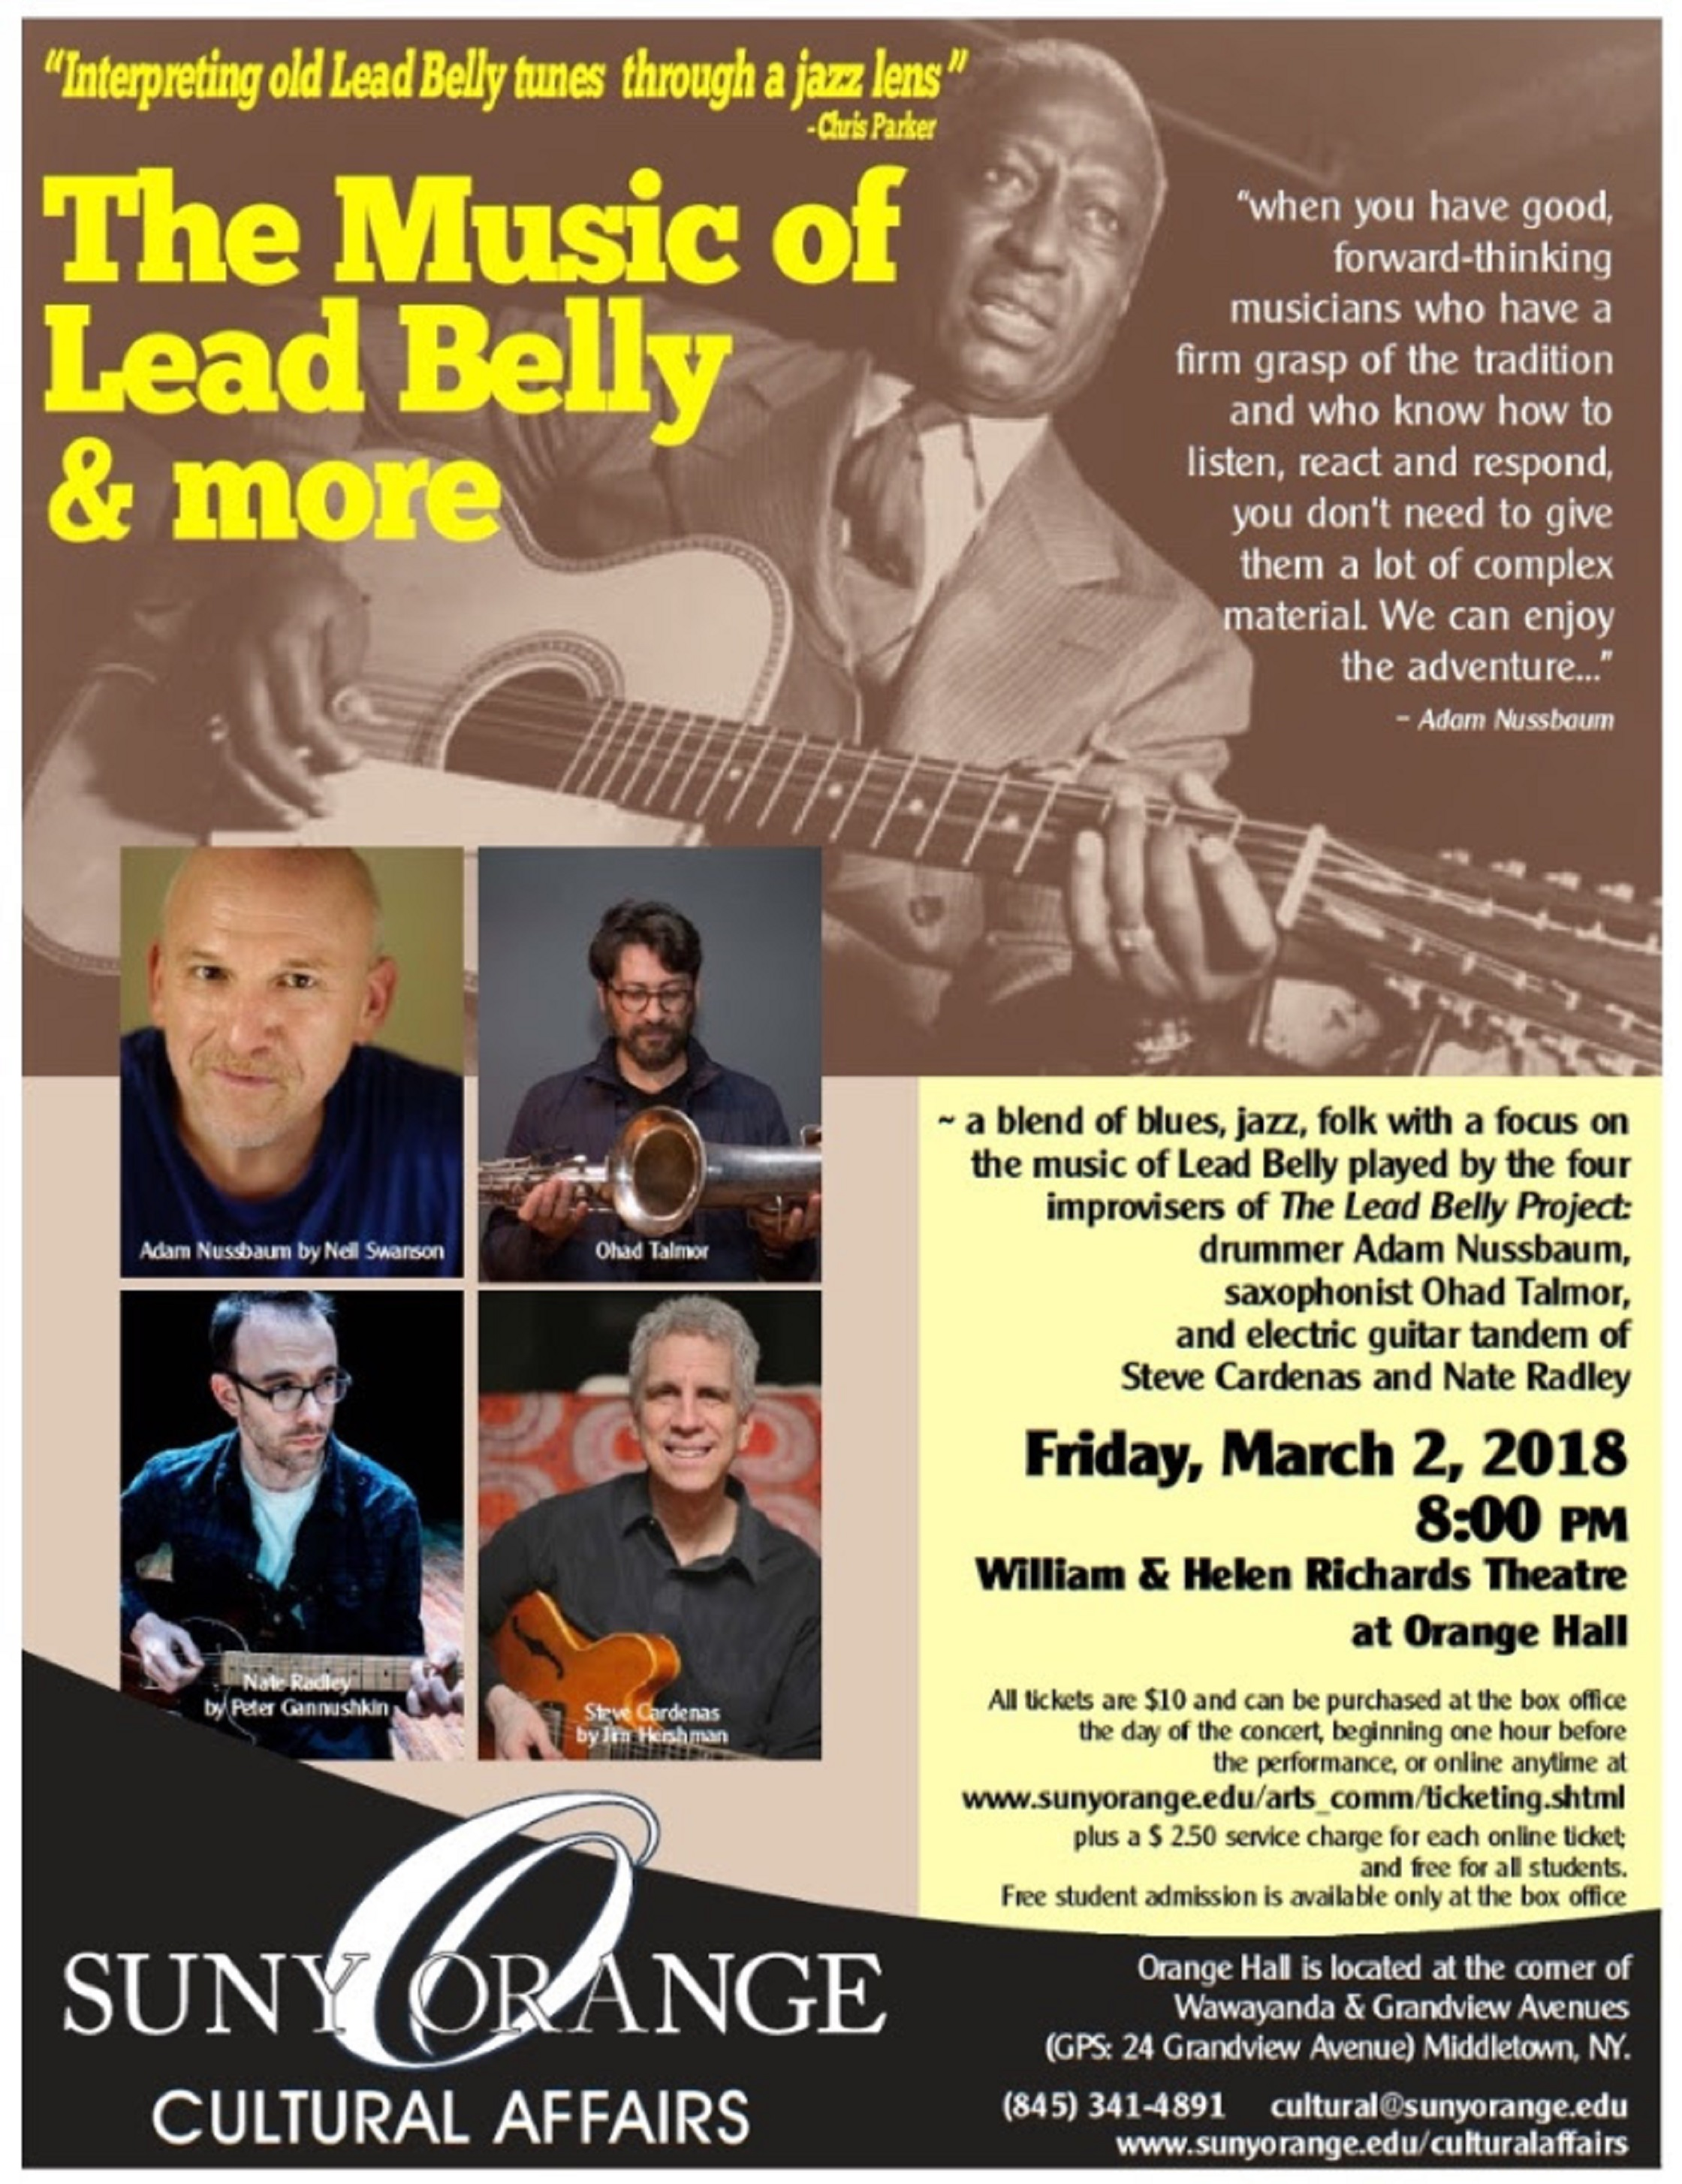 The Music of Lead Belly & more